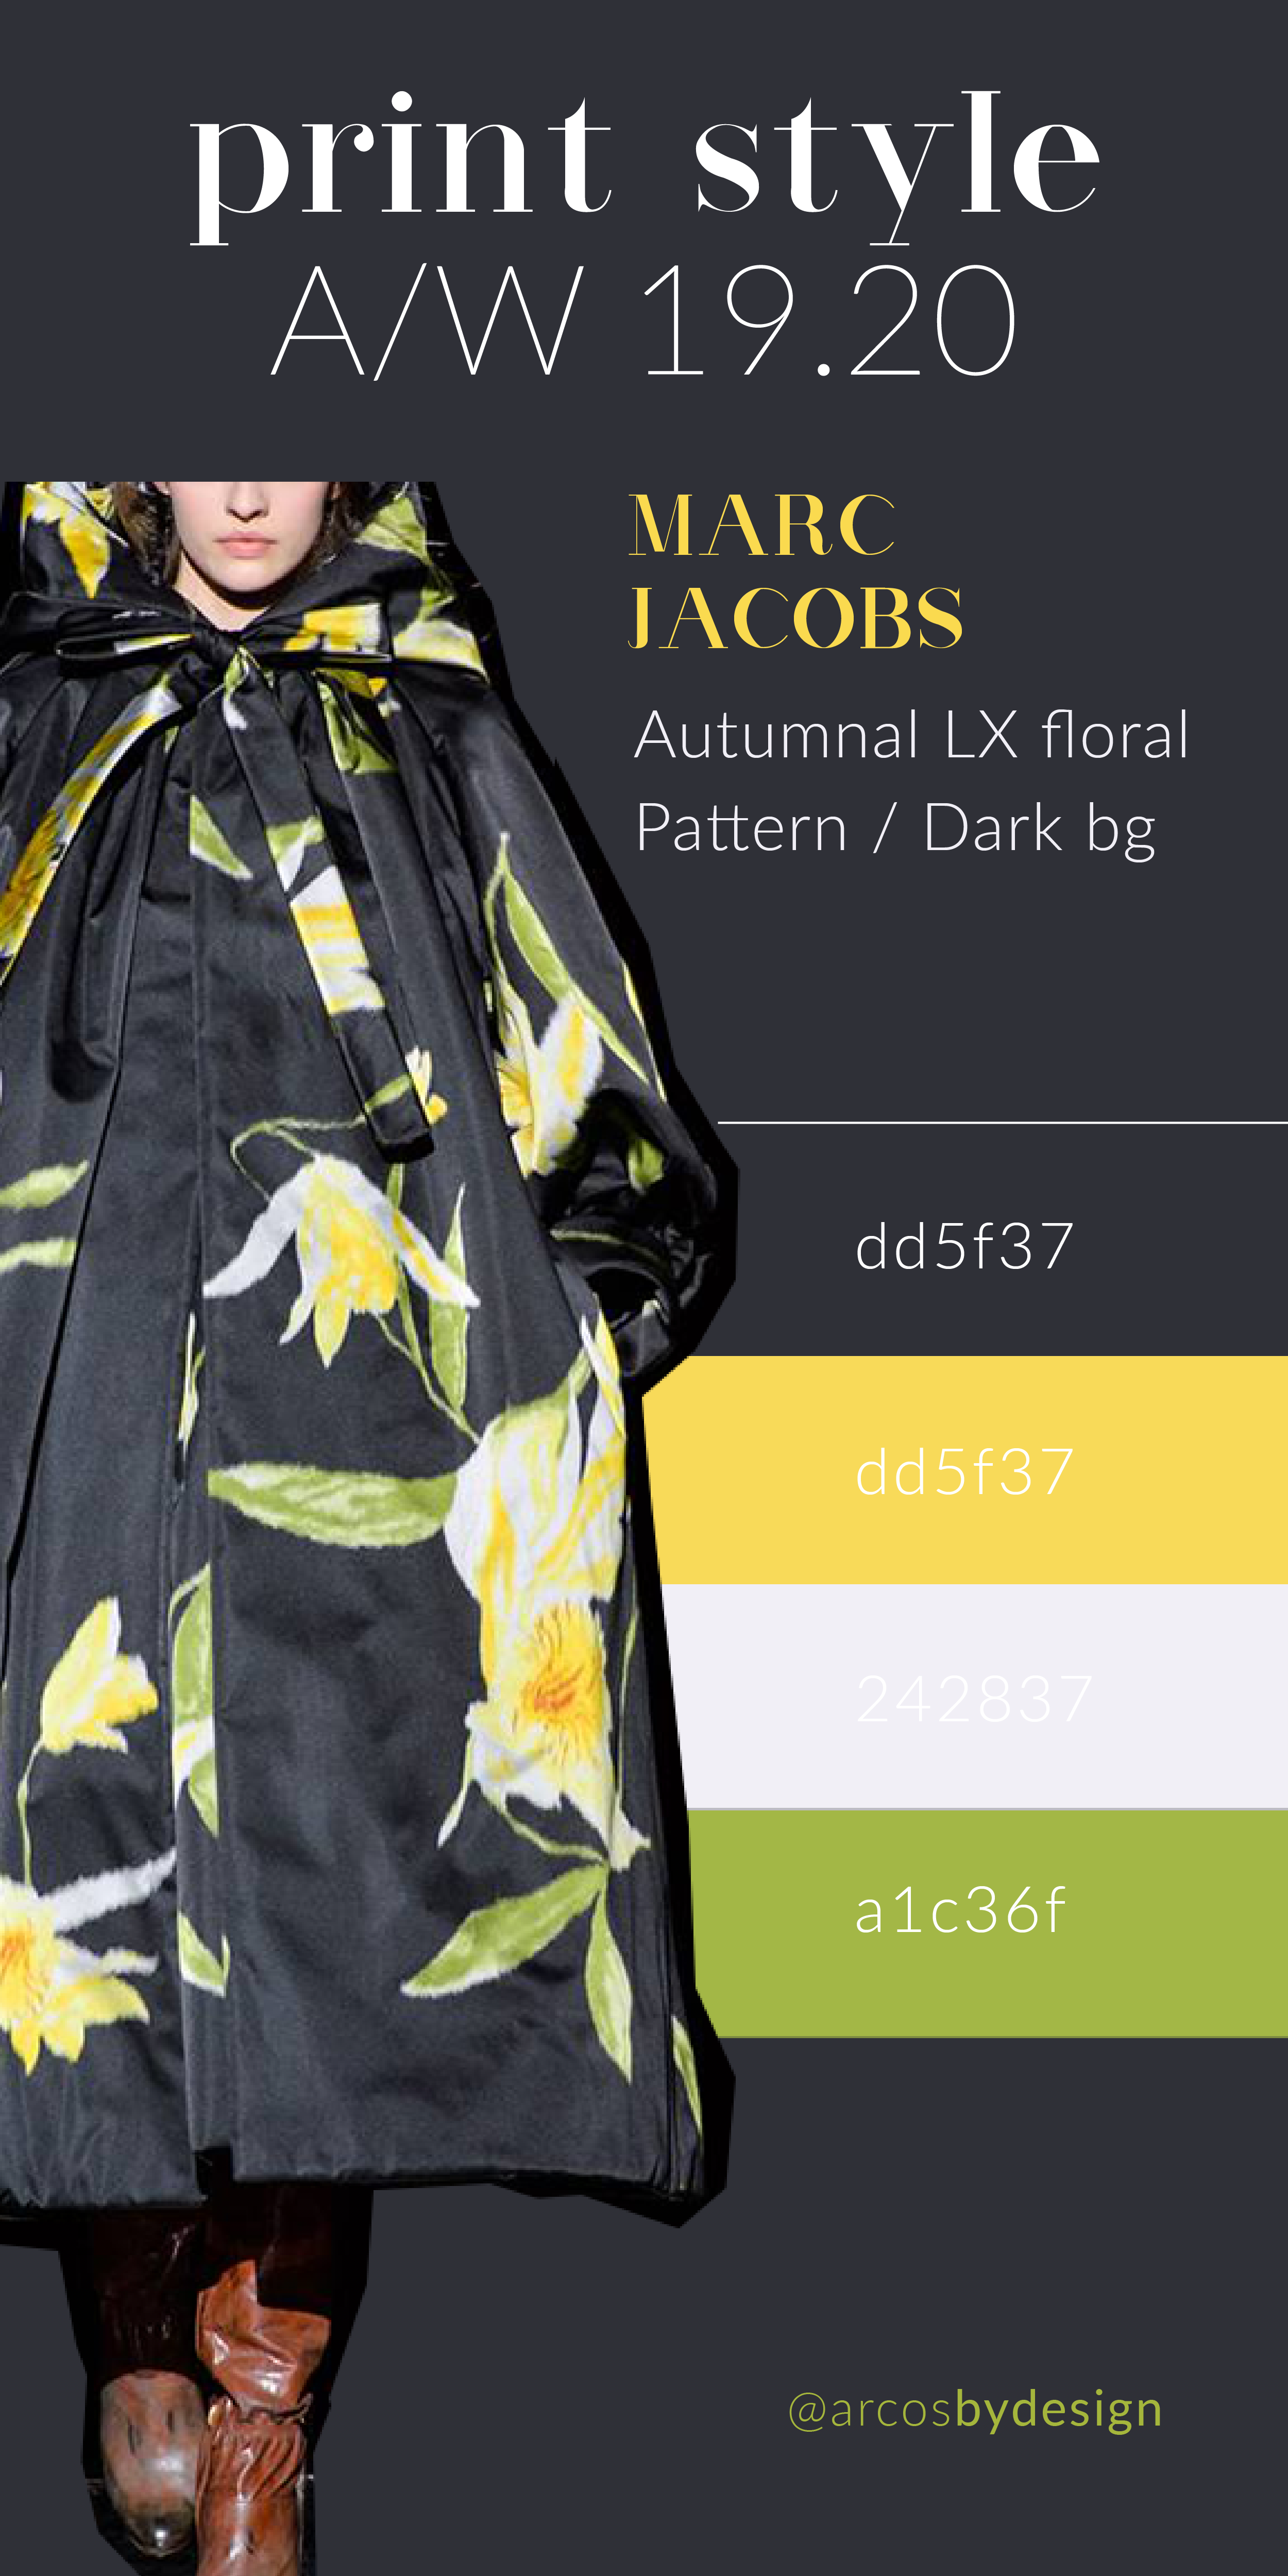 d2d336dd4538 This patterns seams almost like a painting. Very traditional #botanical  design, with,